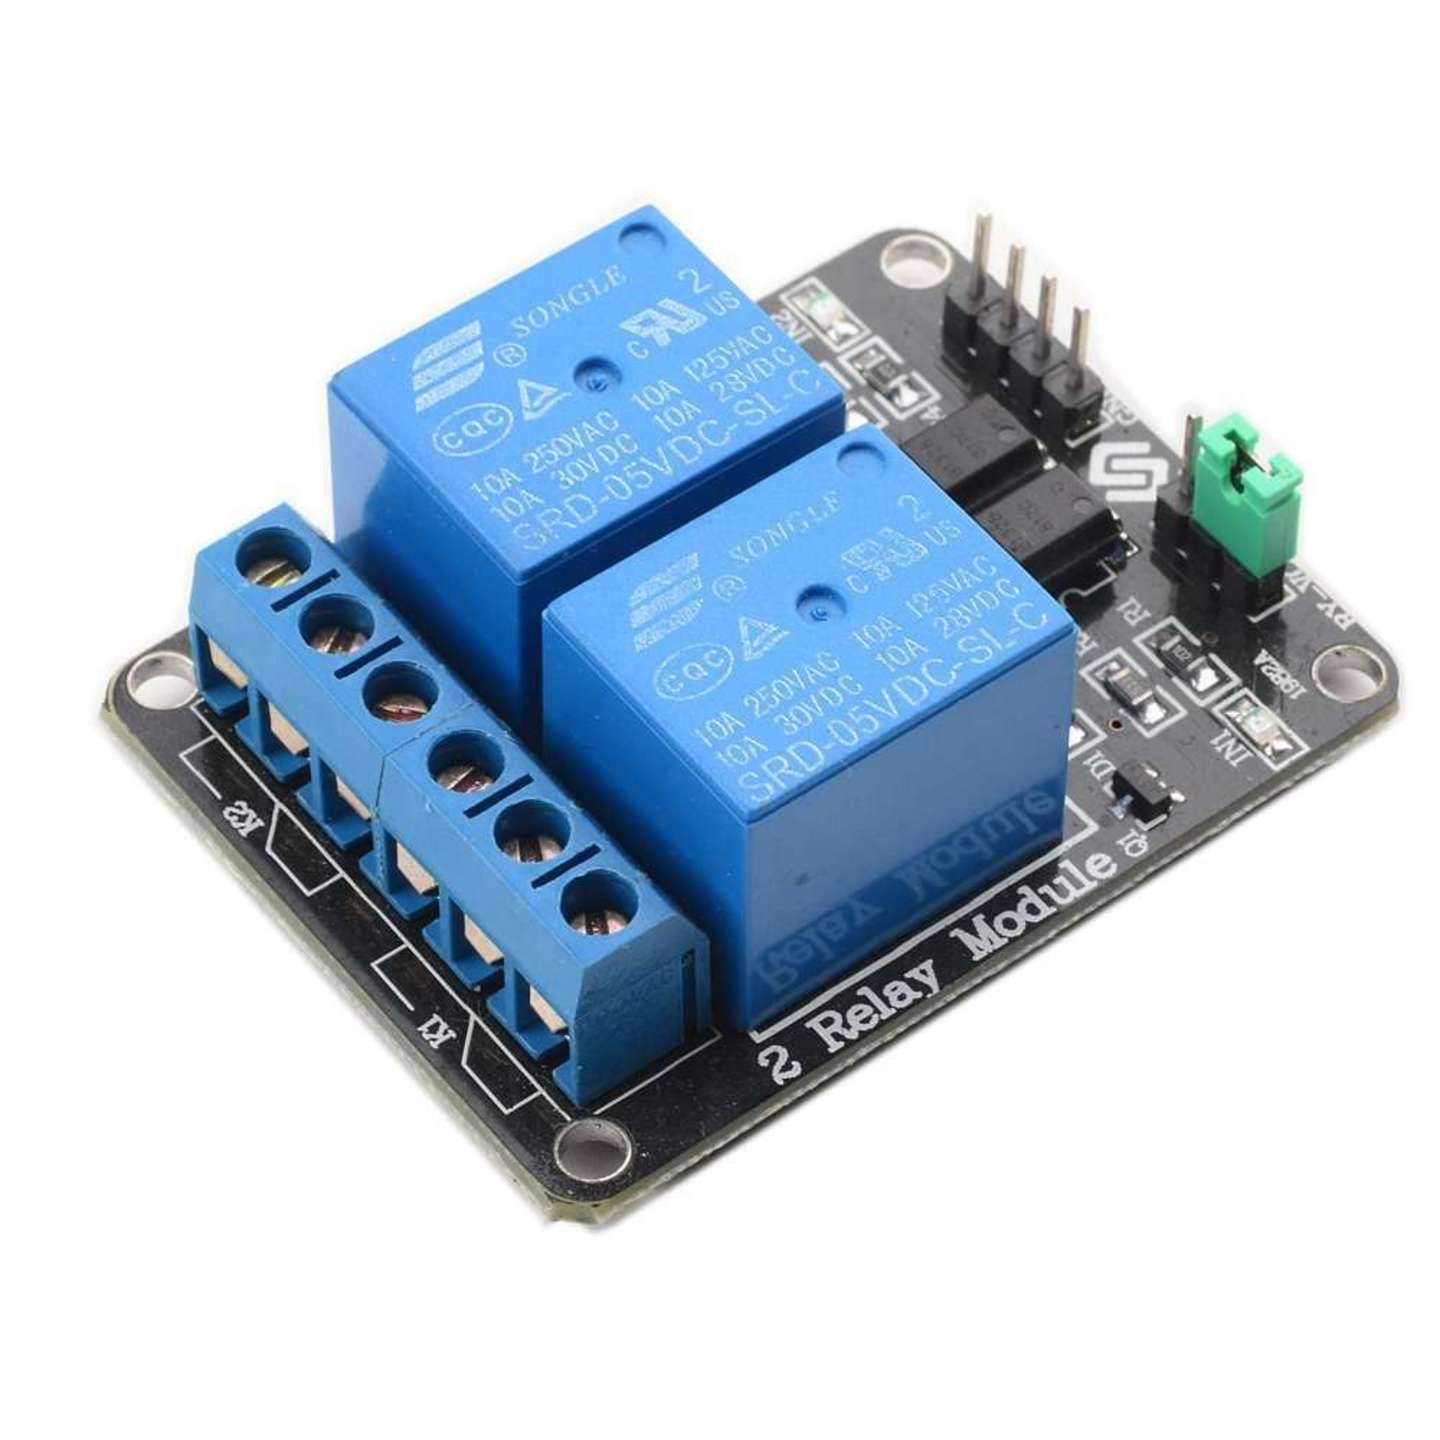 raspberry-pi-relay-l Raspberry Pi Relay Wiring on gang box, high power, plug play for rapid development, expansion board, control circuit,